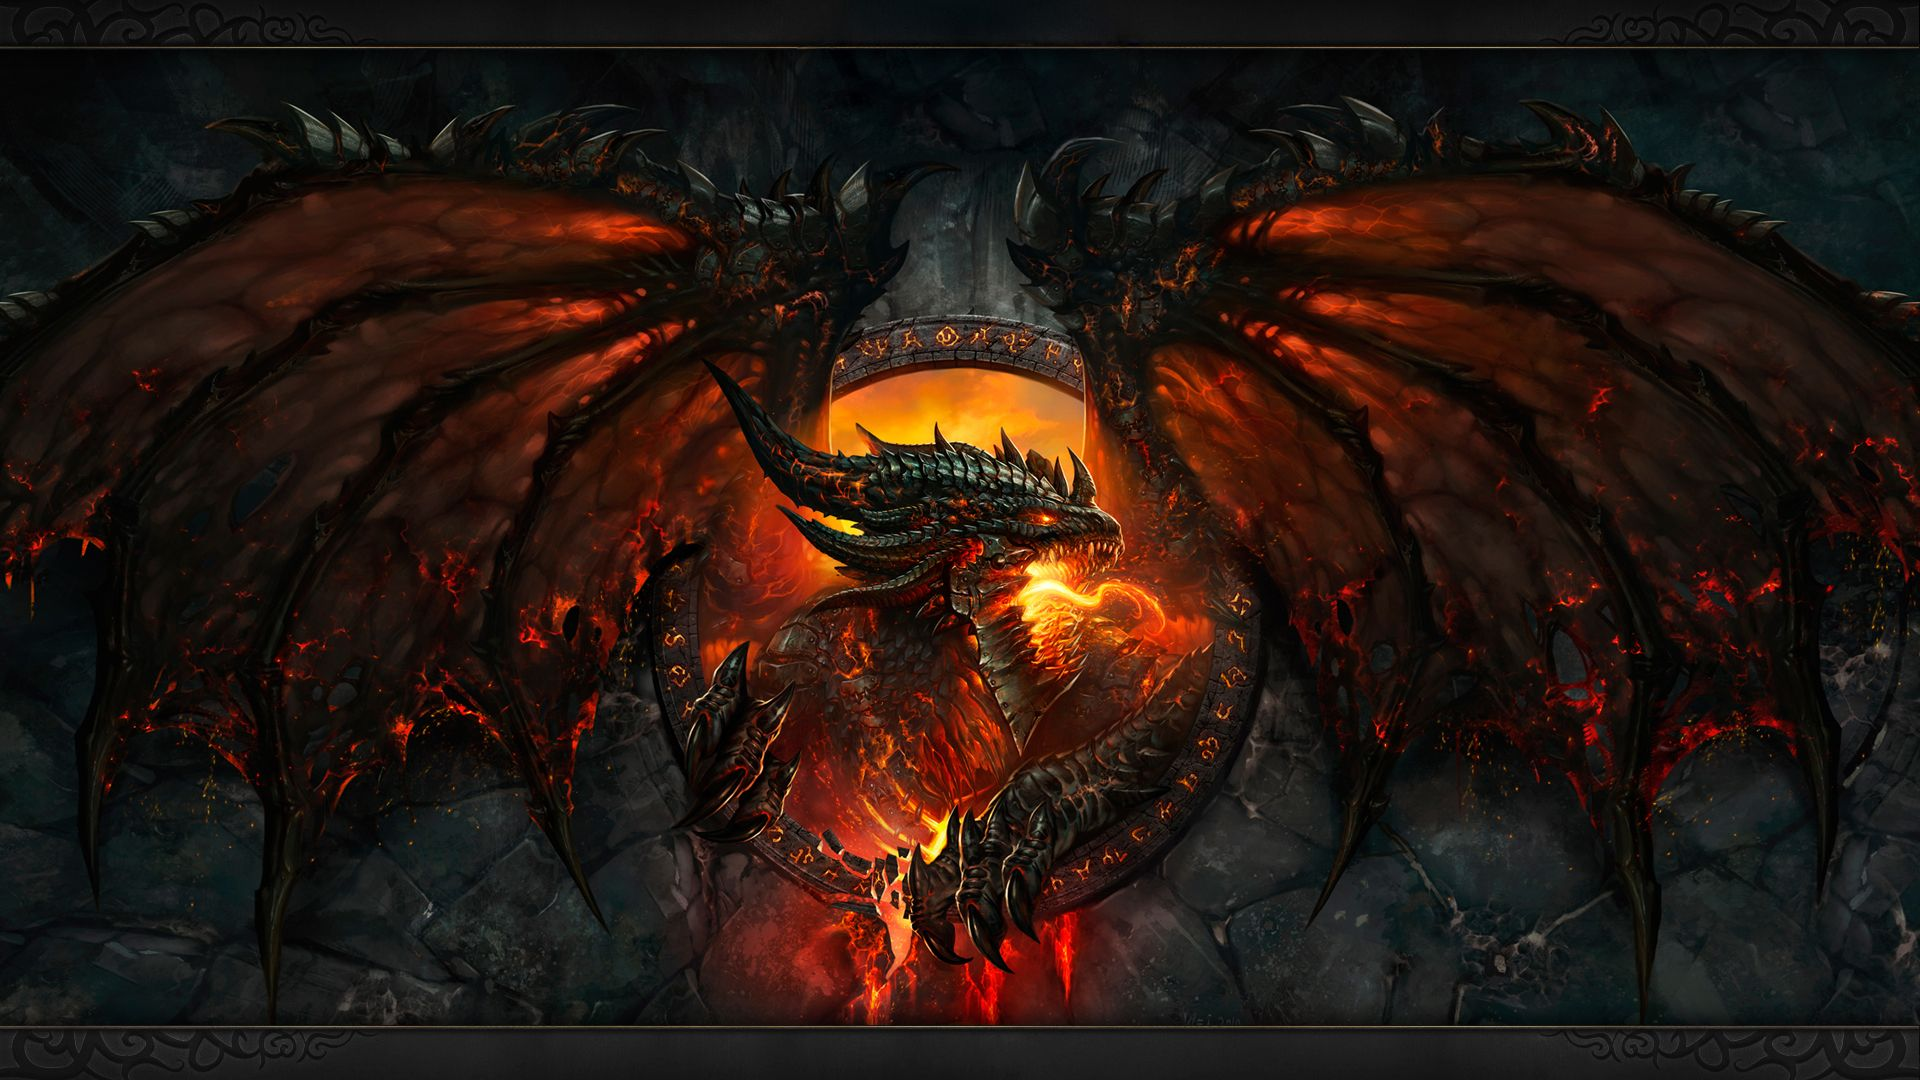 Blizzard Wow Cataclysm Fire Dragon Wallpaper Gb Hd